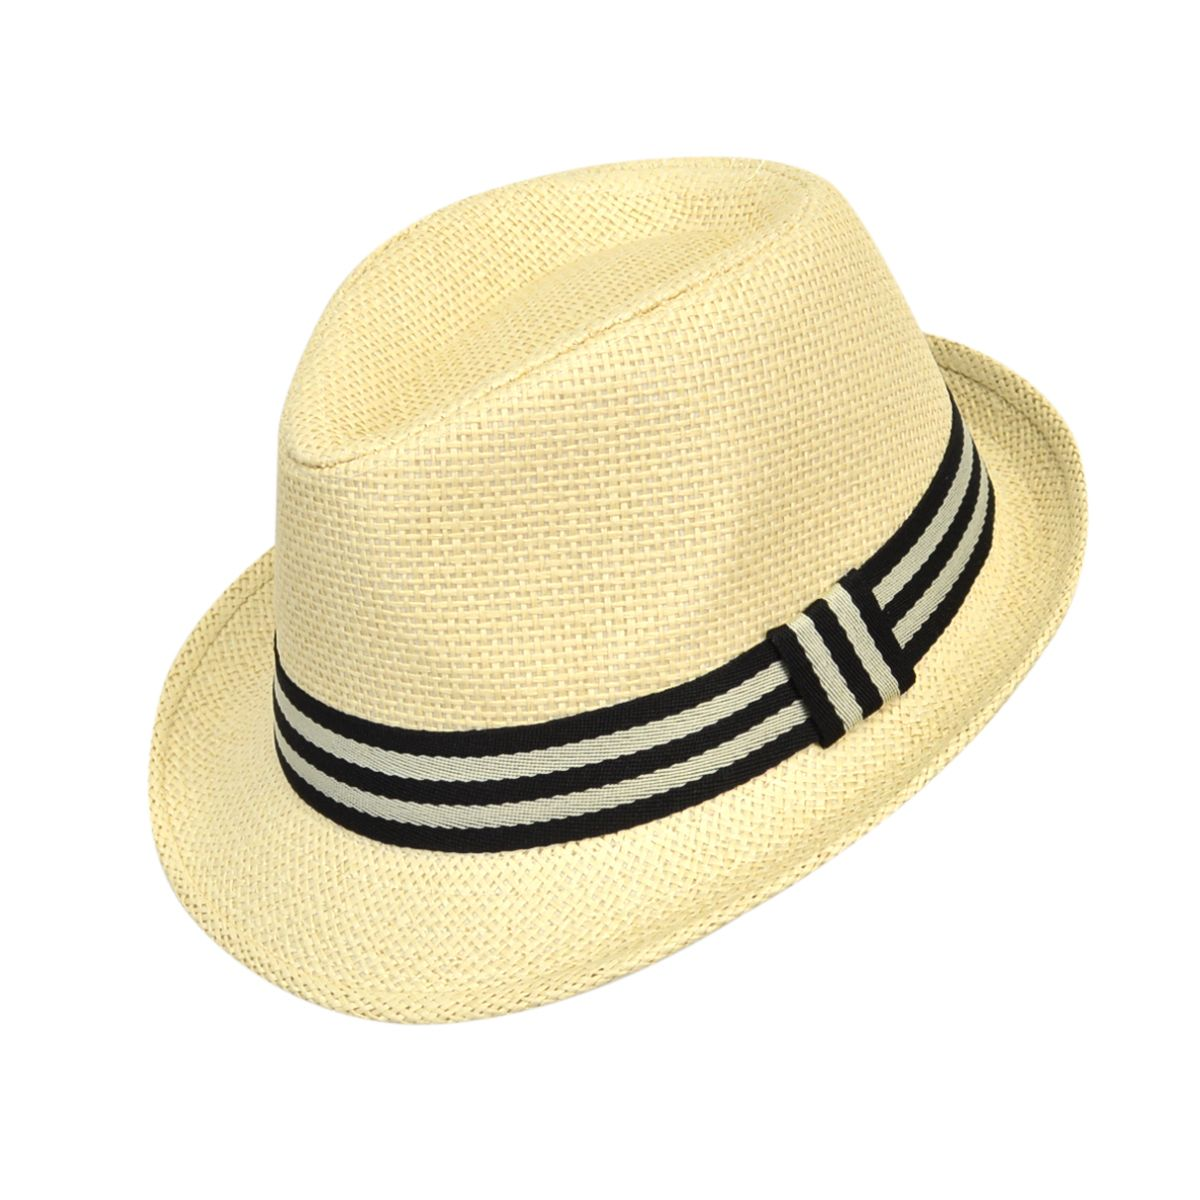 769c7080b7bd1 6pc Boy s Spring Summer Cream Straw Fedora Hats with Black Striped Band  BF9527. Product Description  6pcs Boy s Fedora Hats. Westend Label.